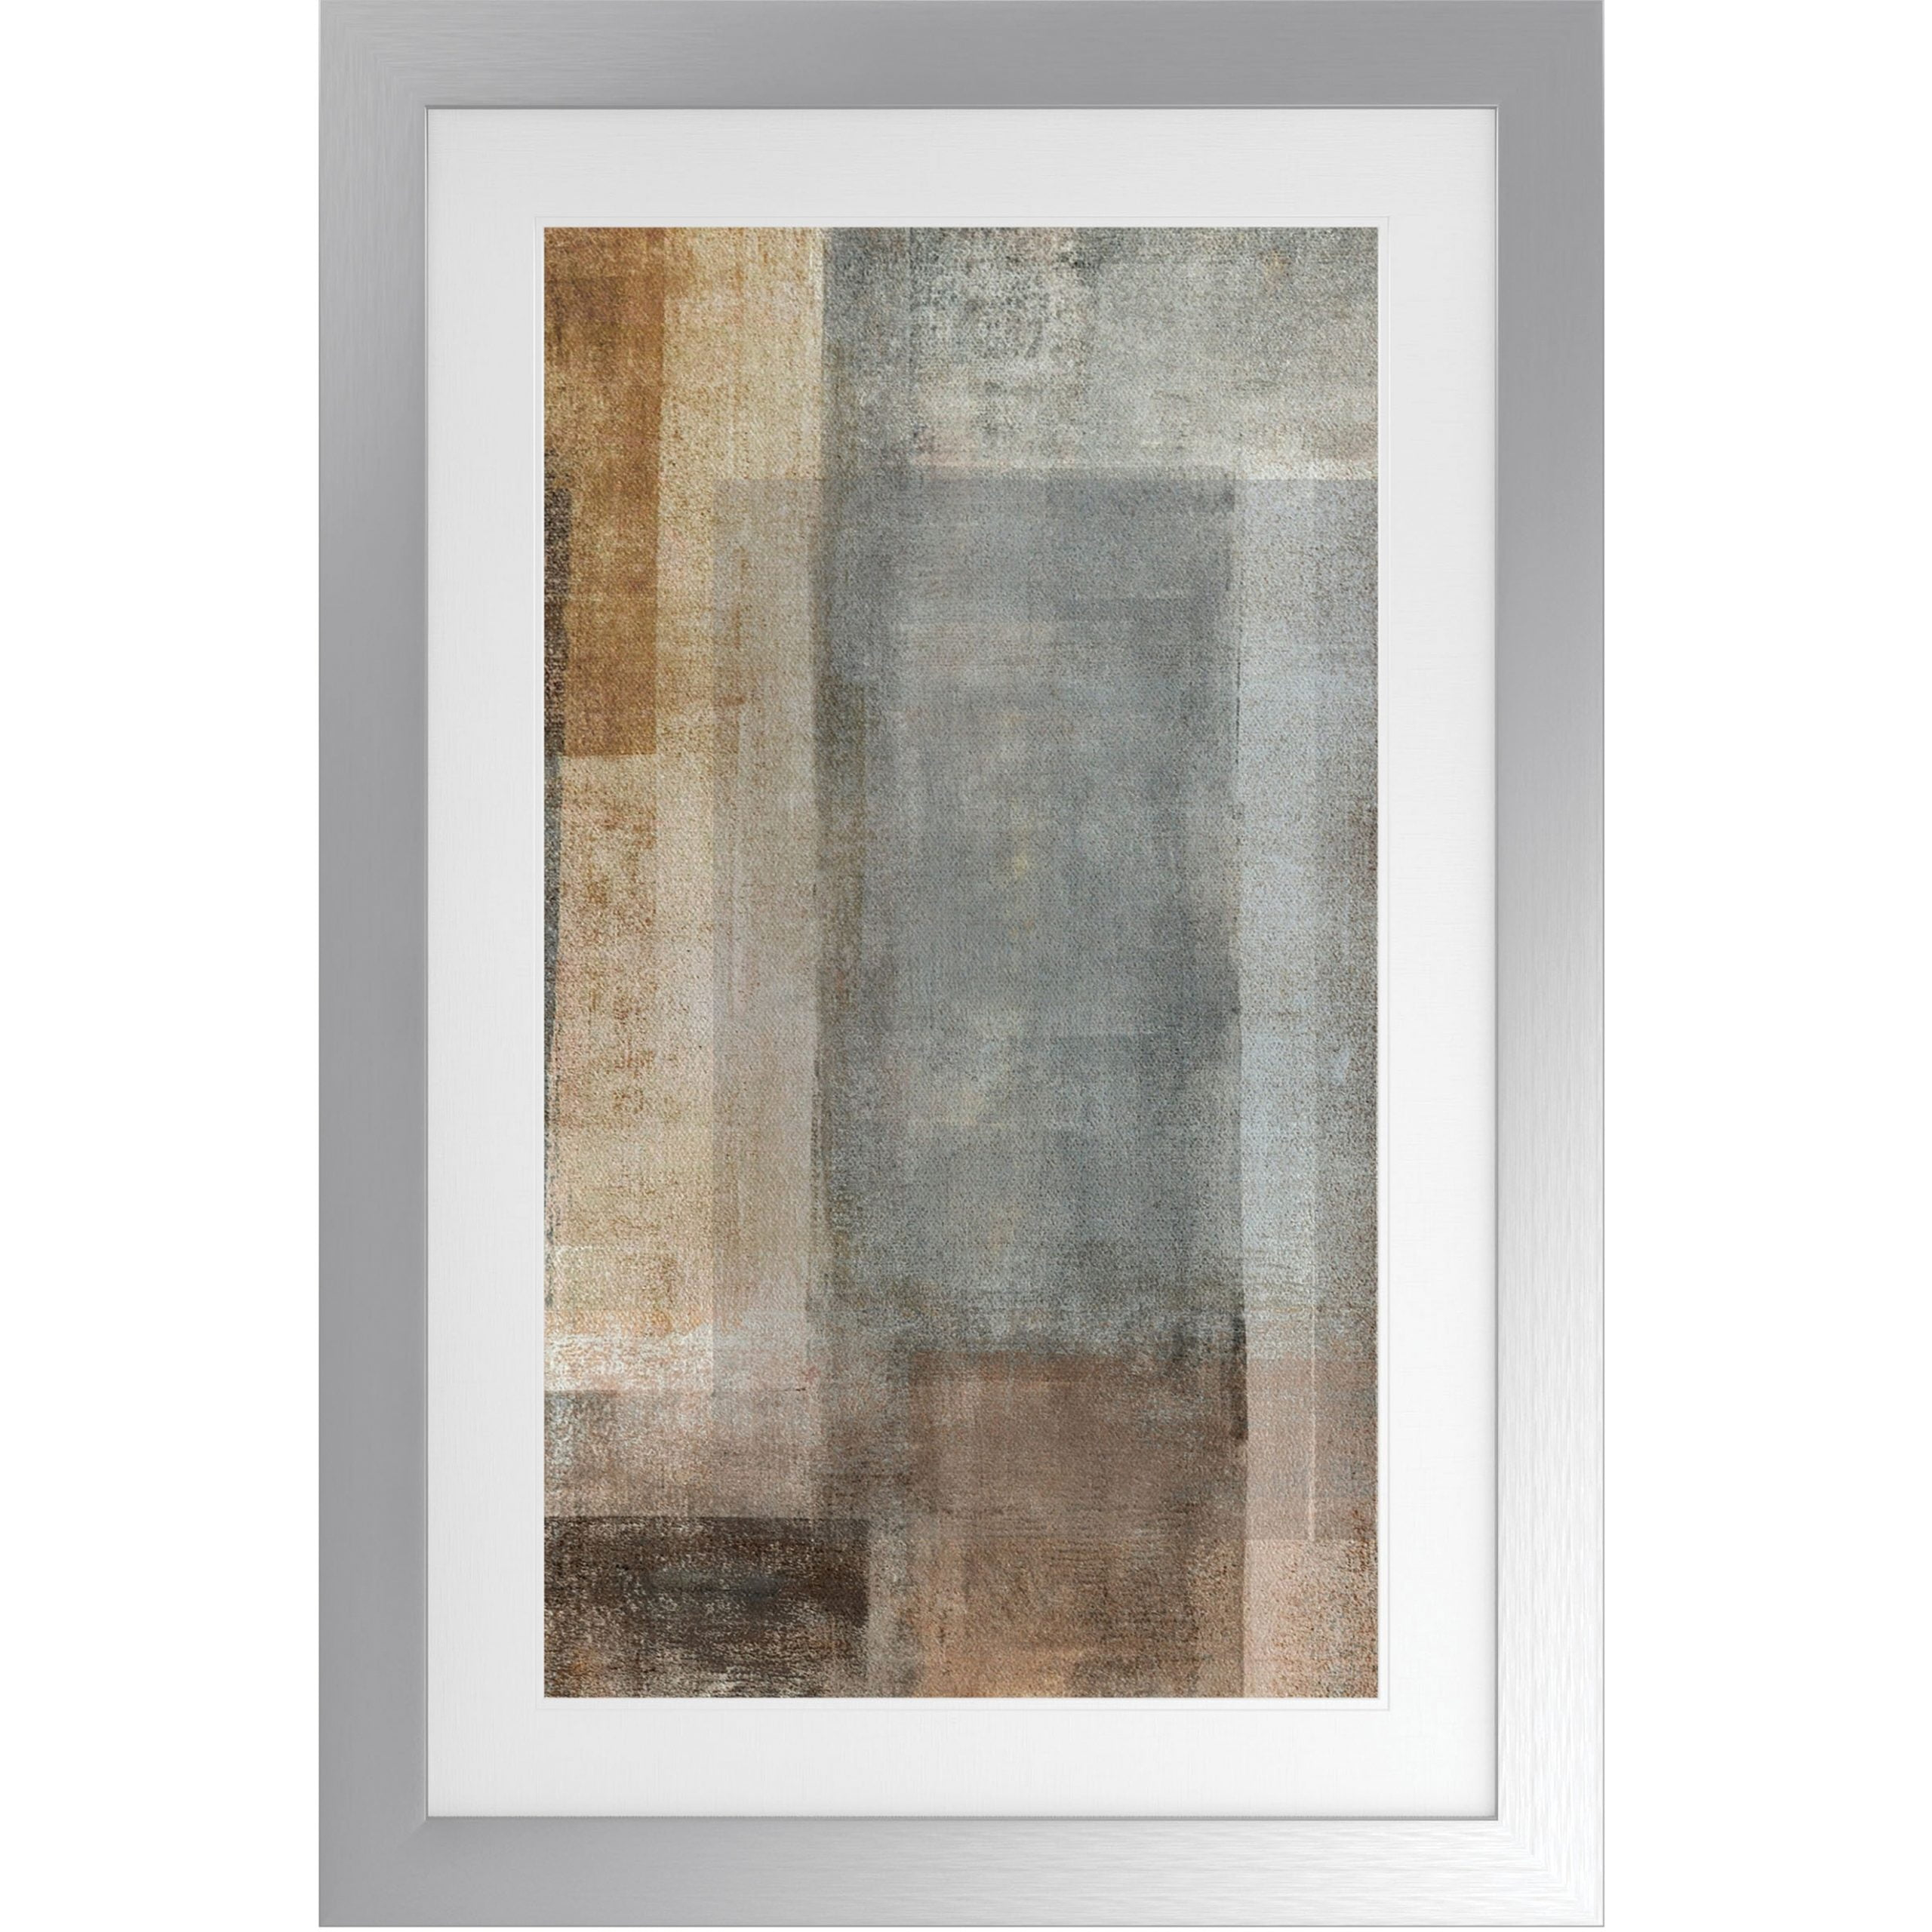 Haze Artwork with Fornari Silver Frame